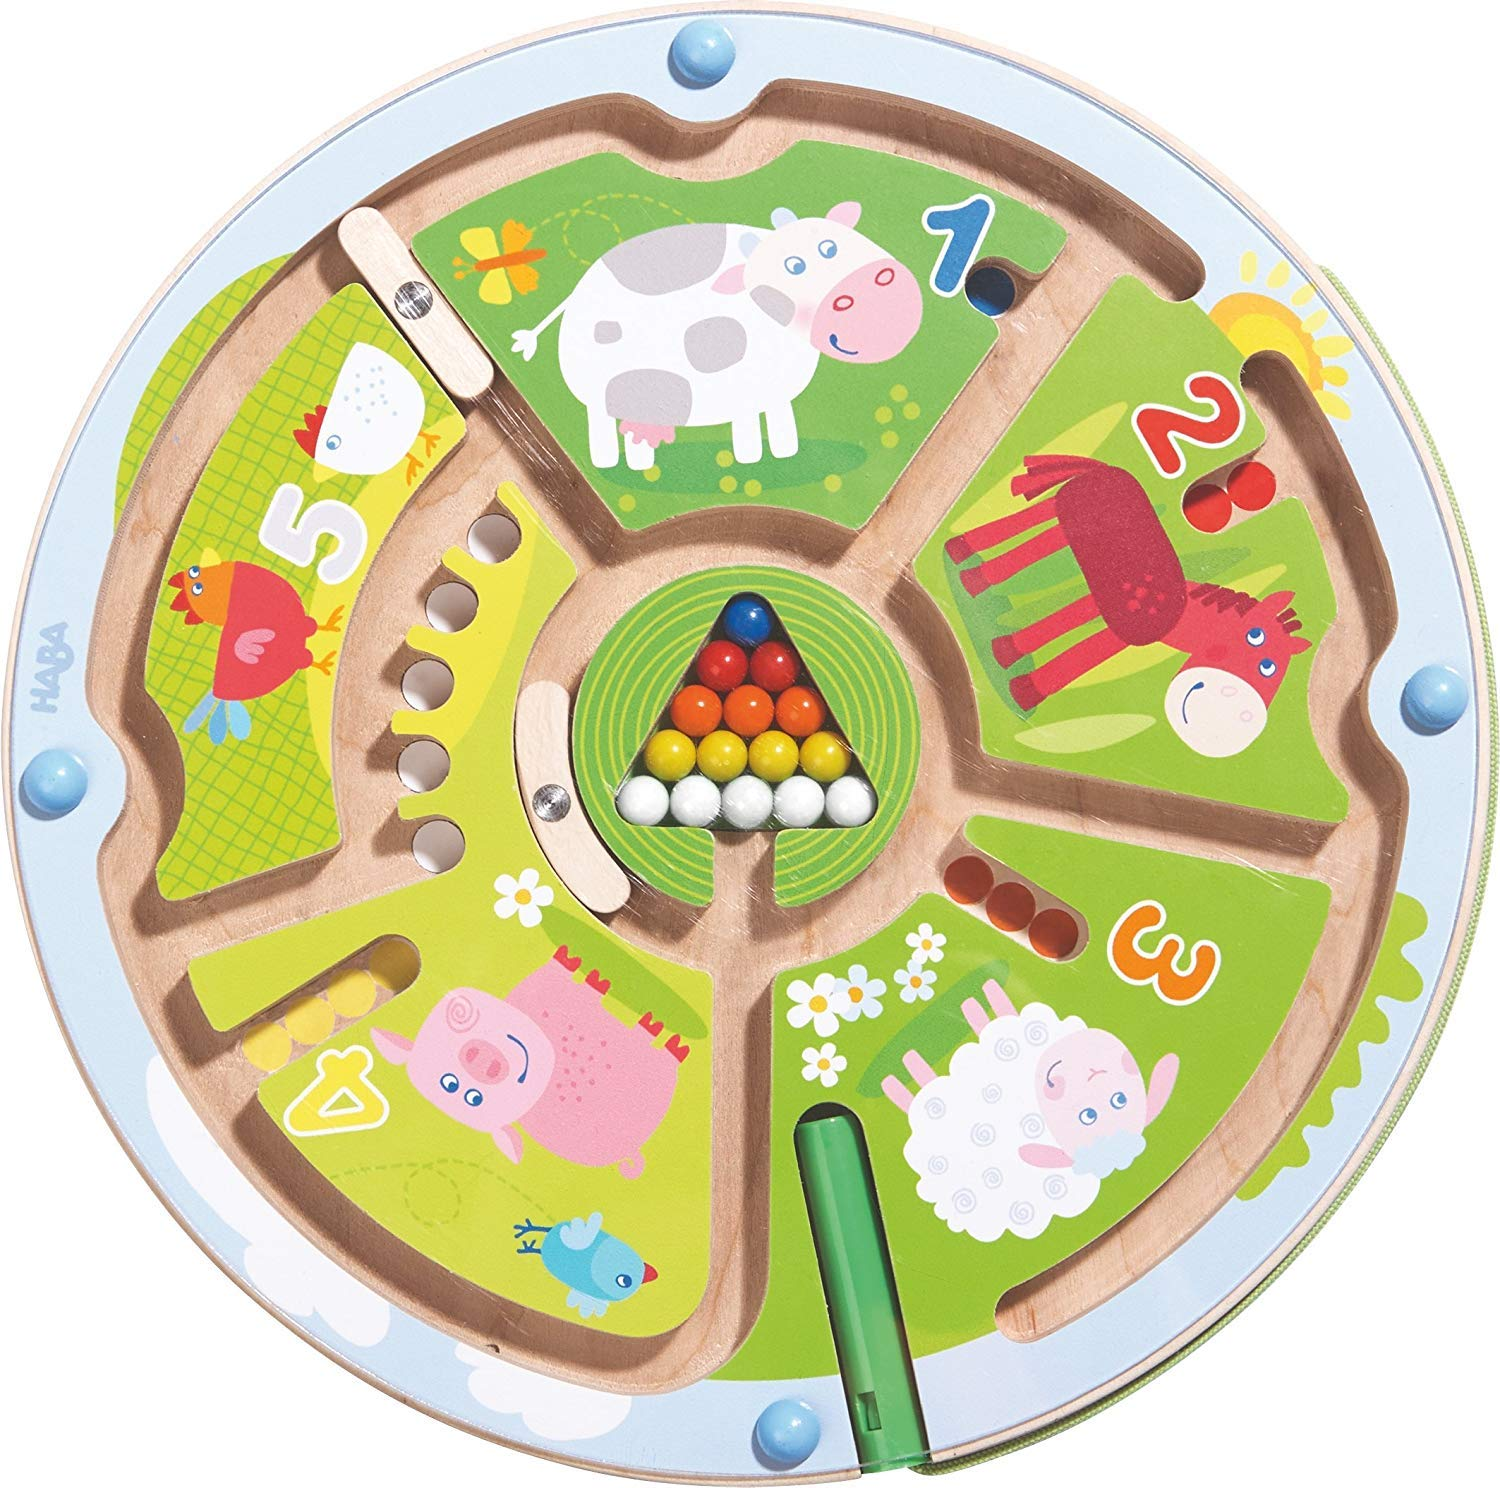 HABA Number Maze Magnetic Game STEM Toy Encourages Color Recognition, Fine Motor & Counting by HABA